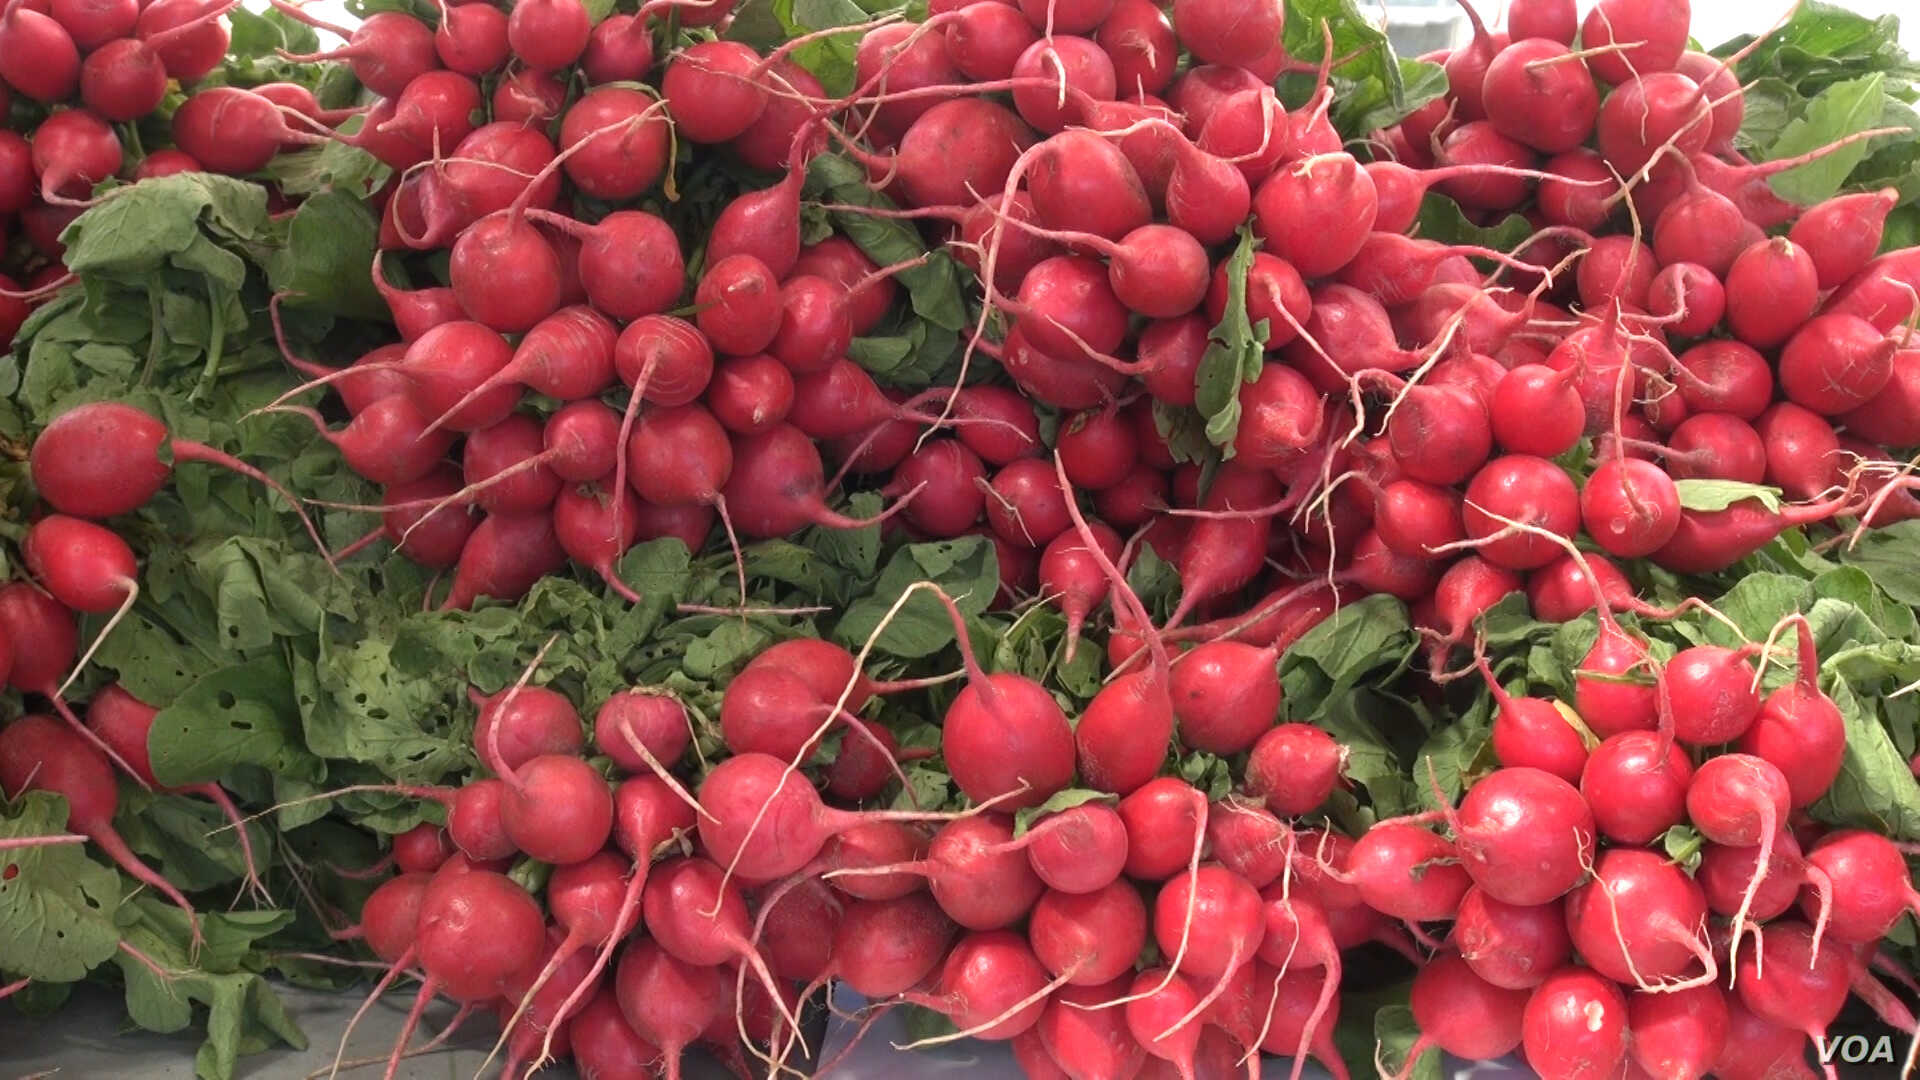 This display of fresh radishes was an attention-getting splash of color as shoppers stroll through the market. (J. Soh/VOA)